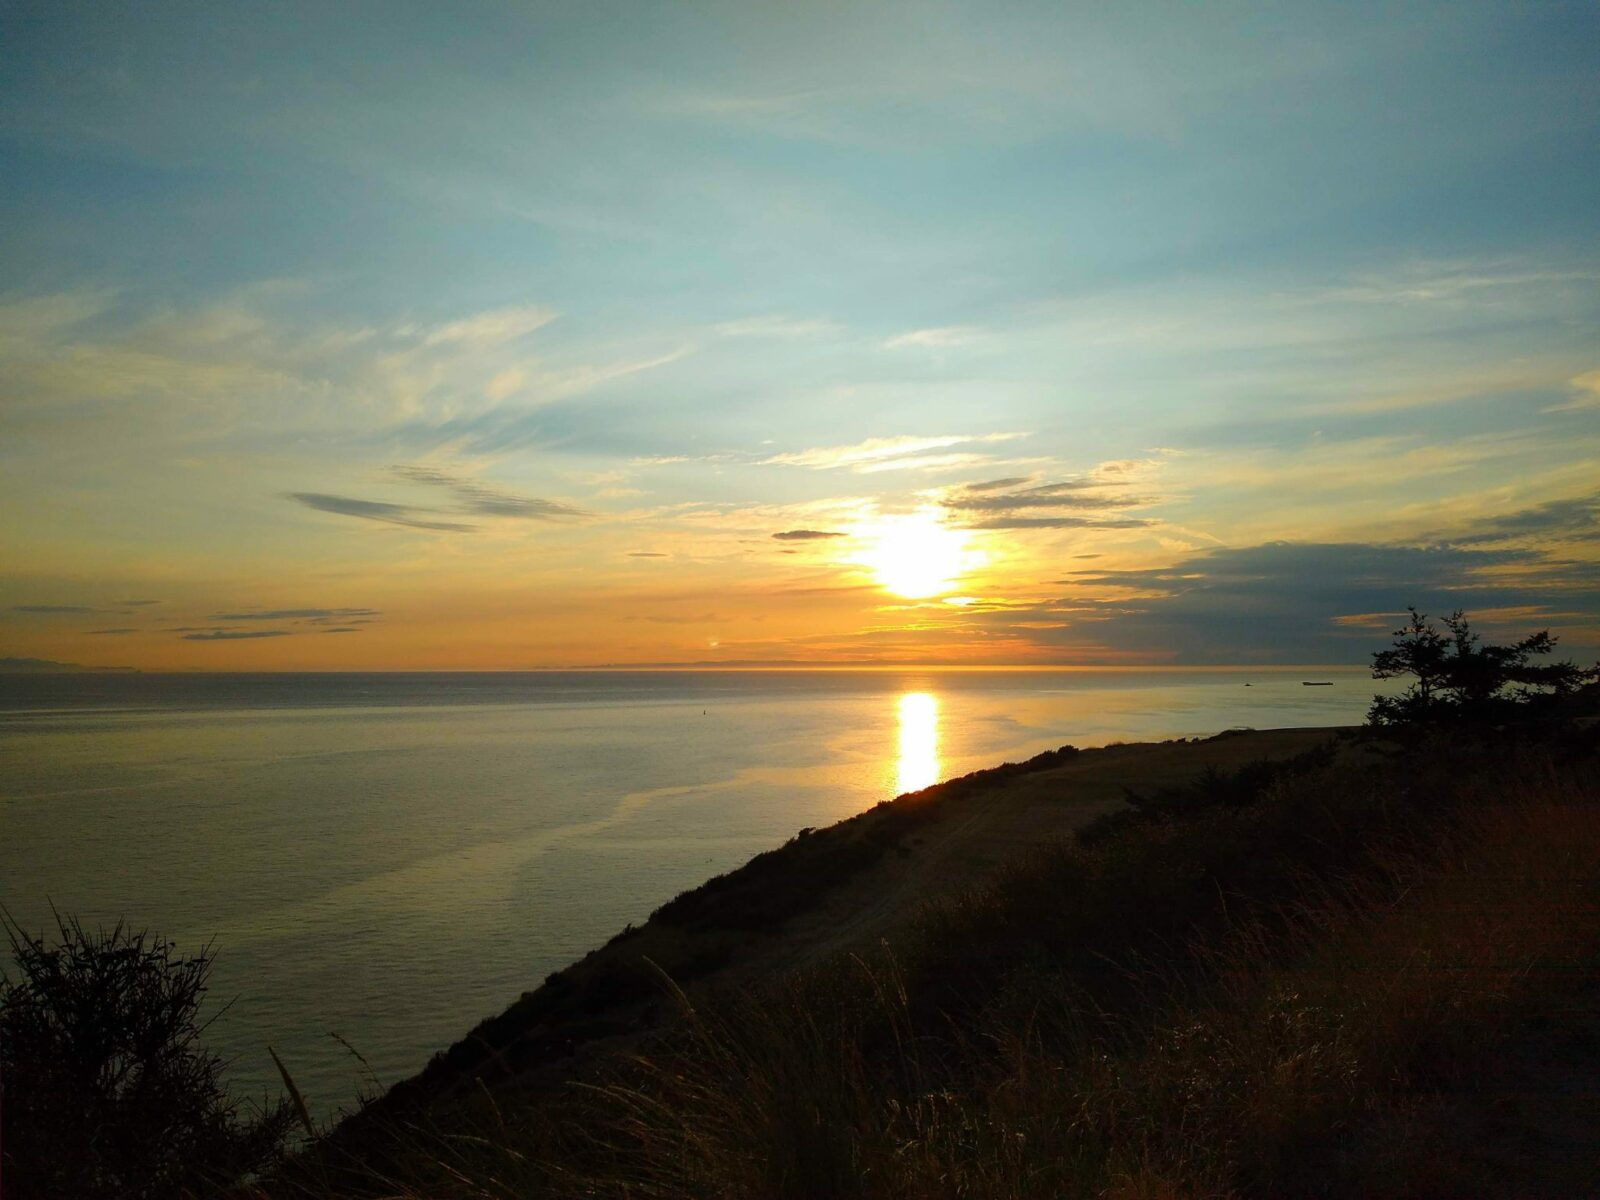 Sunset from a whidbey island hike at Fort Ebey State Park. There is a bluff in the foreground in shadow with a couple of trees. Beyond is calm water going as far as you can see. The sun is just setting behind a few clouds